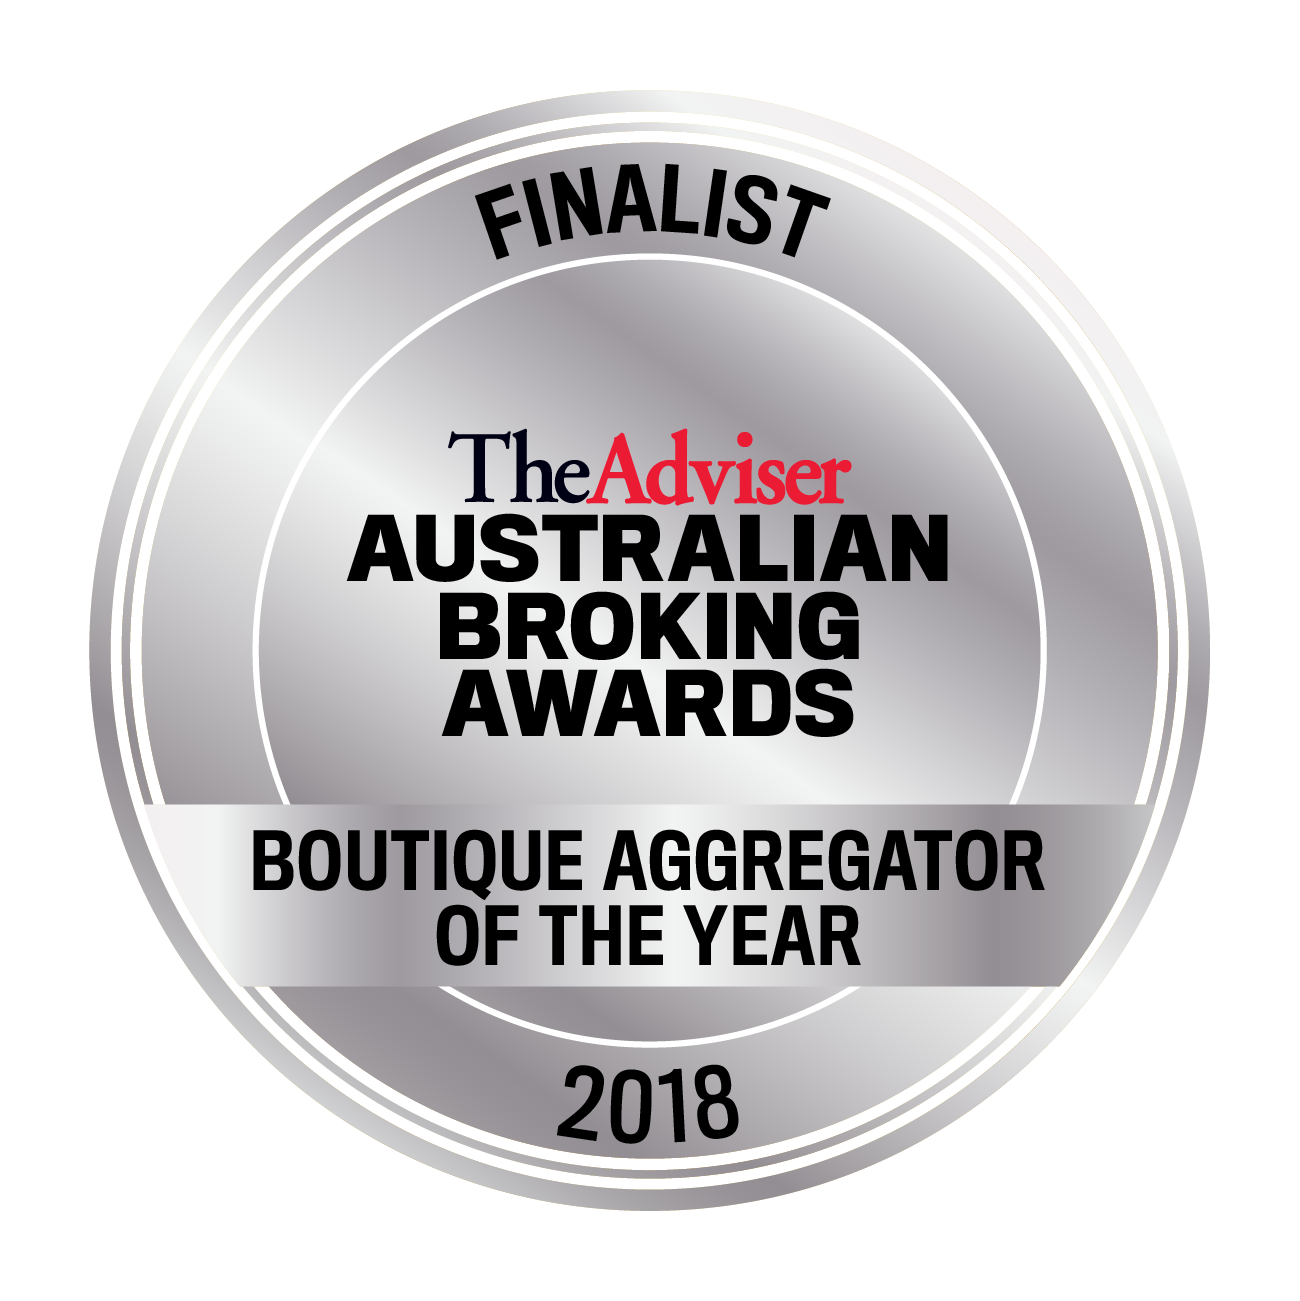 AMA Finalist - Boutique Aggregator of the Year 2018